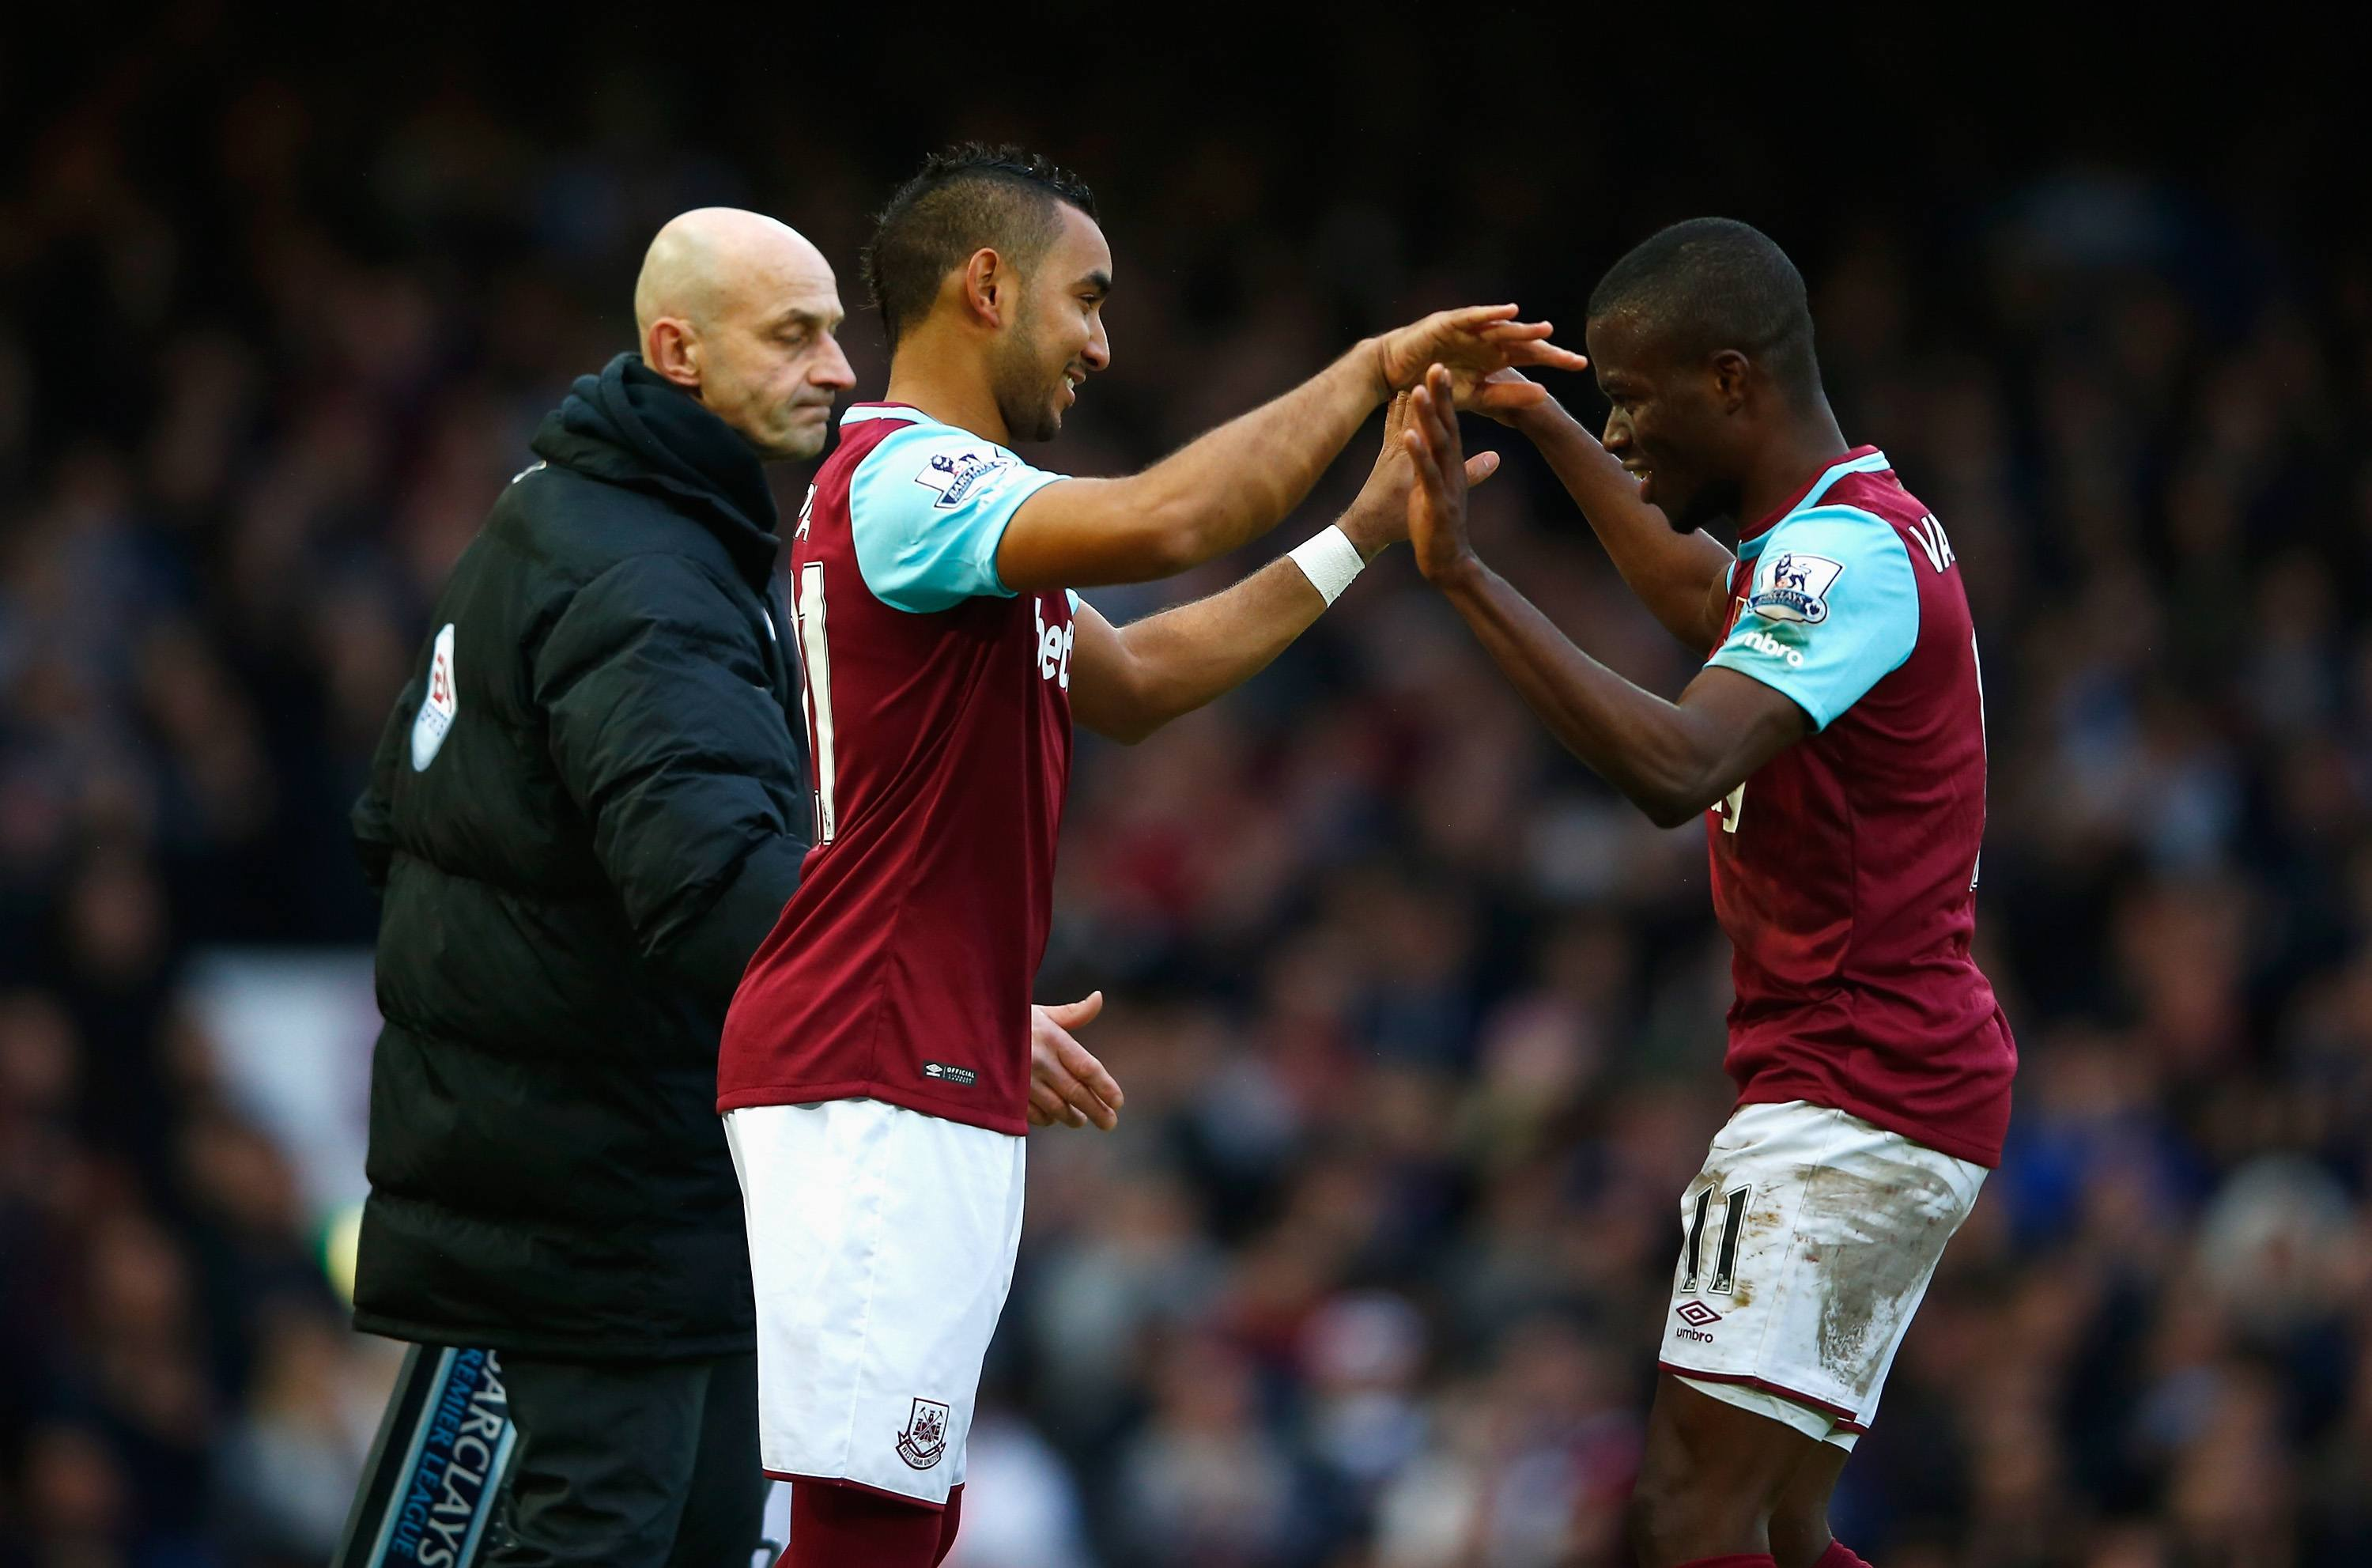 LONDON, ENGLAND - JANUARY 02: Dimitri Payet (C) of West Ham United replaces Enner Valencia (R) during the Barclays Premier League match between West Ham United and Liverpool at Boleyn Ground on January 2, 2016 in London, England. (Photo by Christopher Lee/Getty Images)